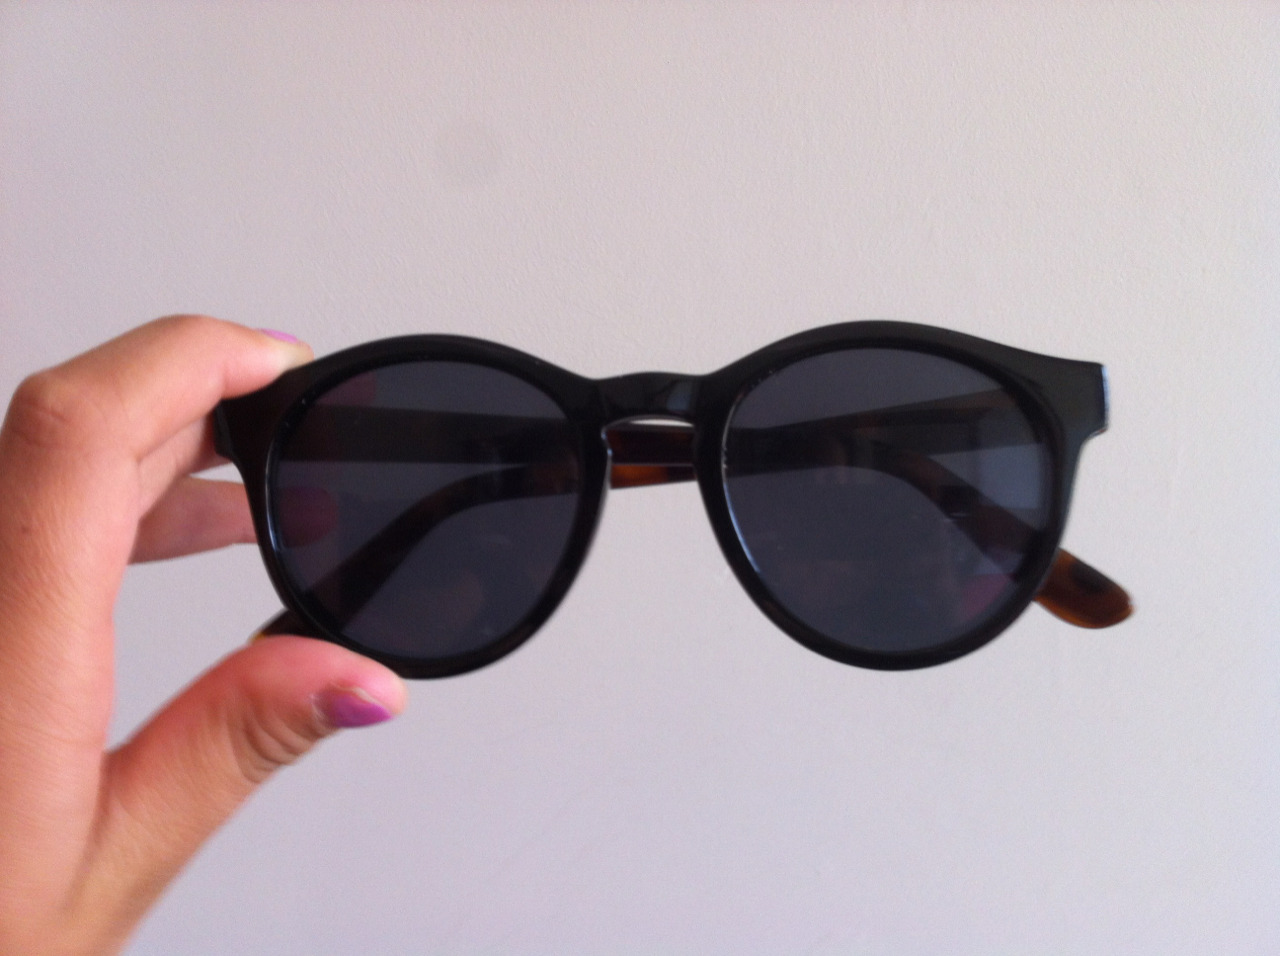 My sunnies aha I am an organic blog!